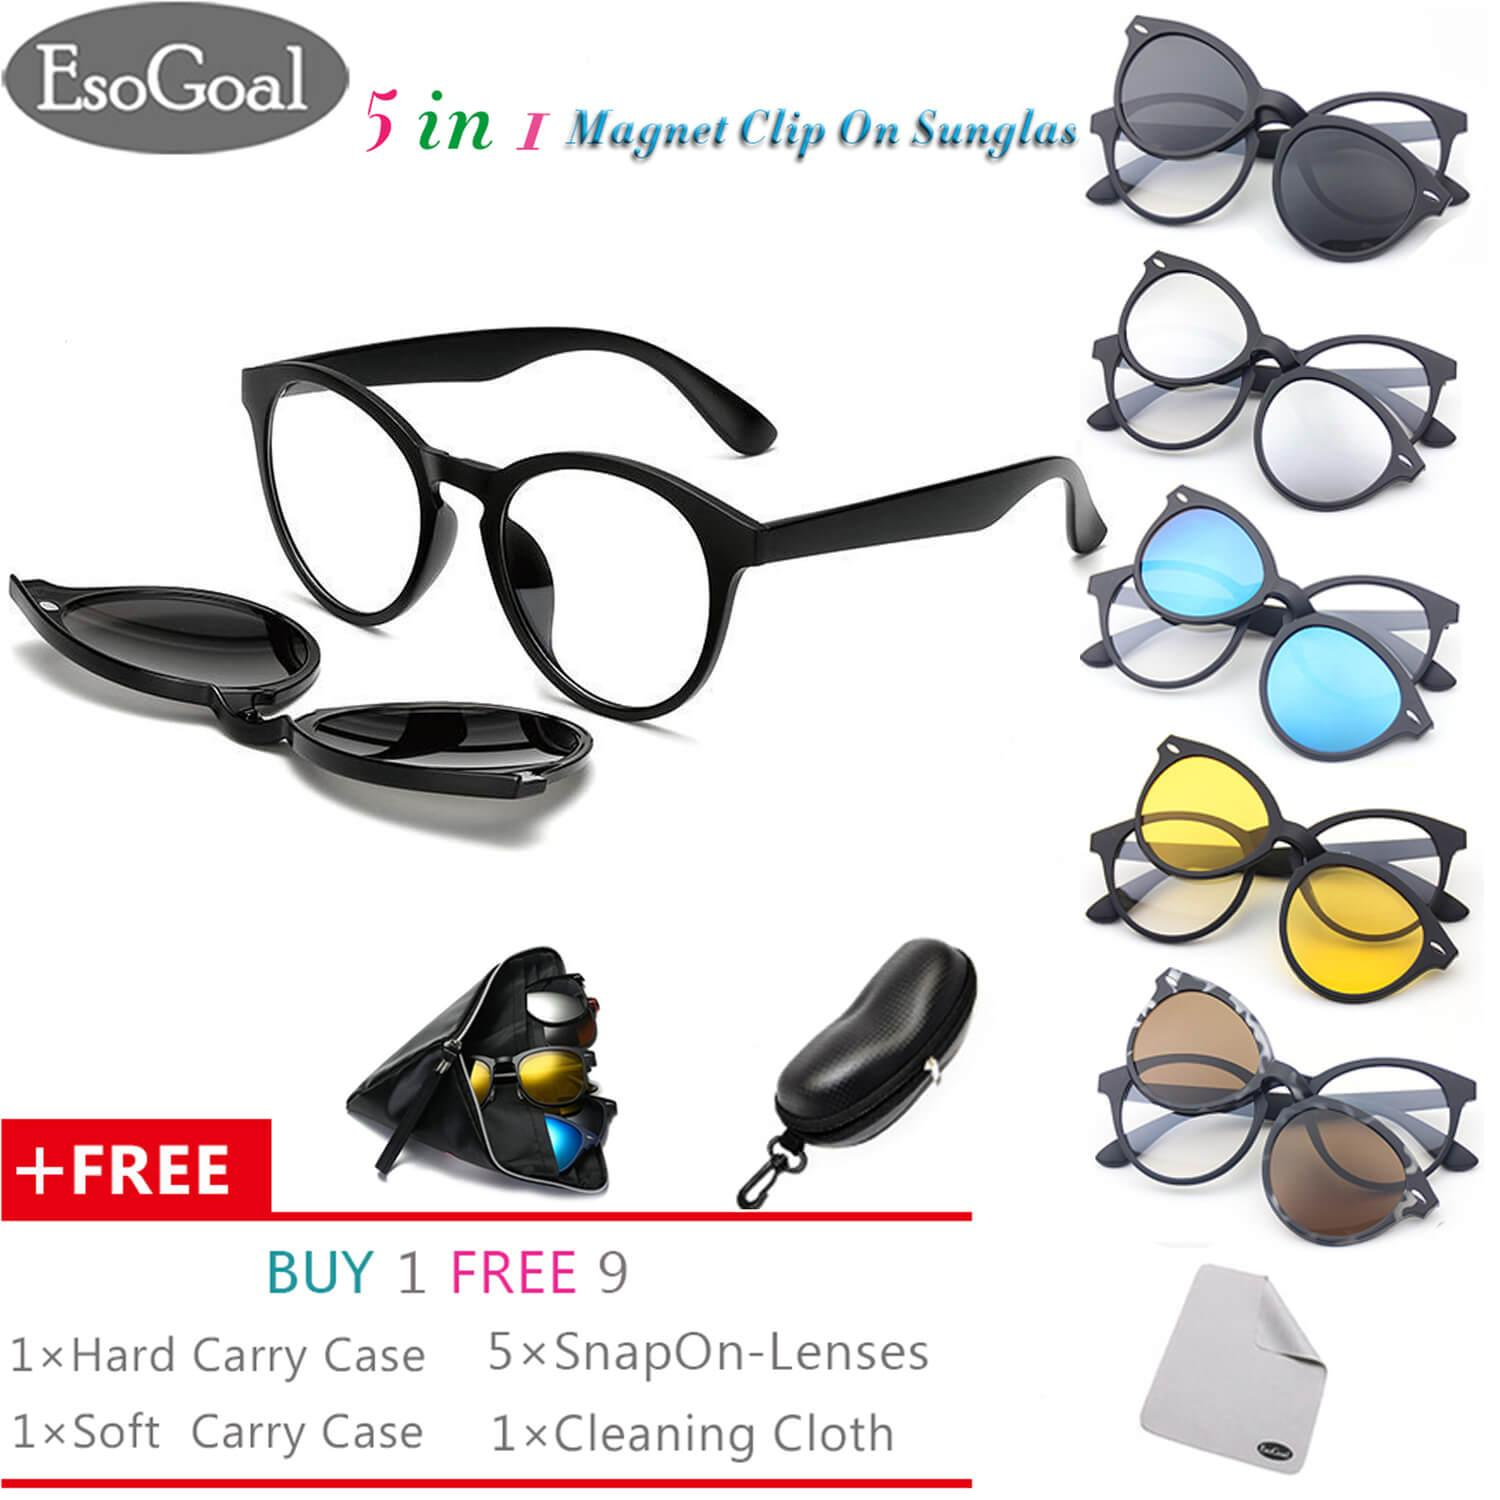 e9a6aeb998a EsoGoal Magnetic Sunglasses Clip On Glasses Unisex Polarized Lenses Retro  Frame with Set of 5 lenses